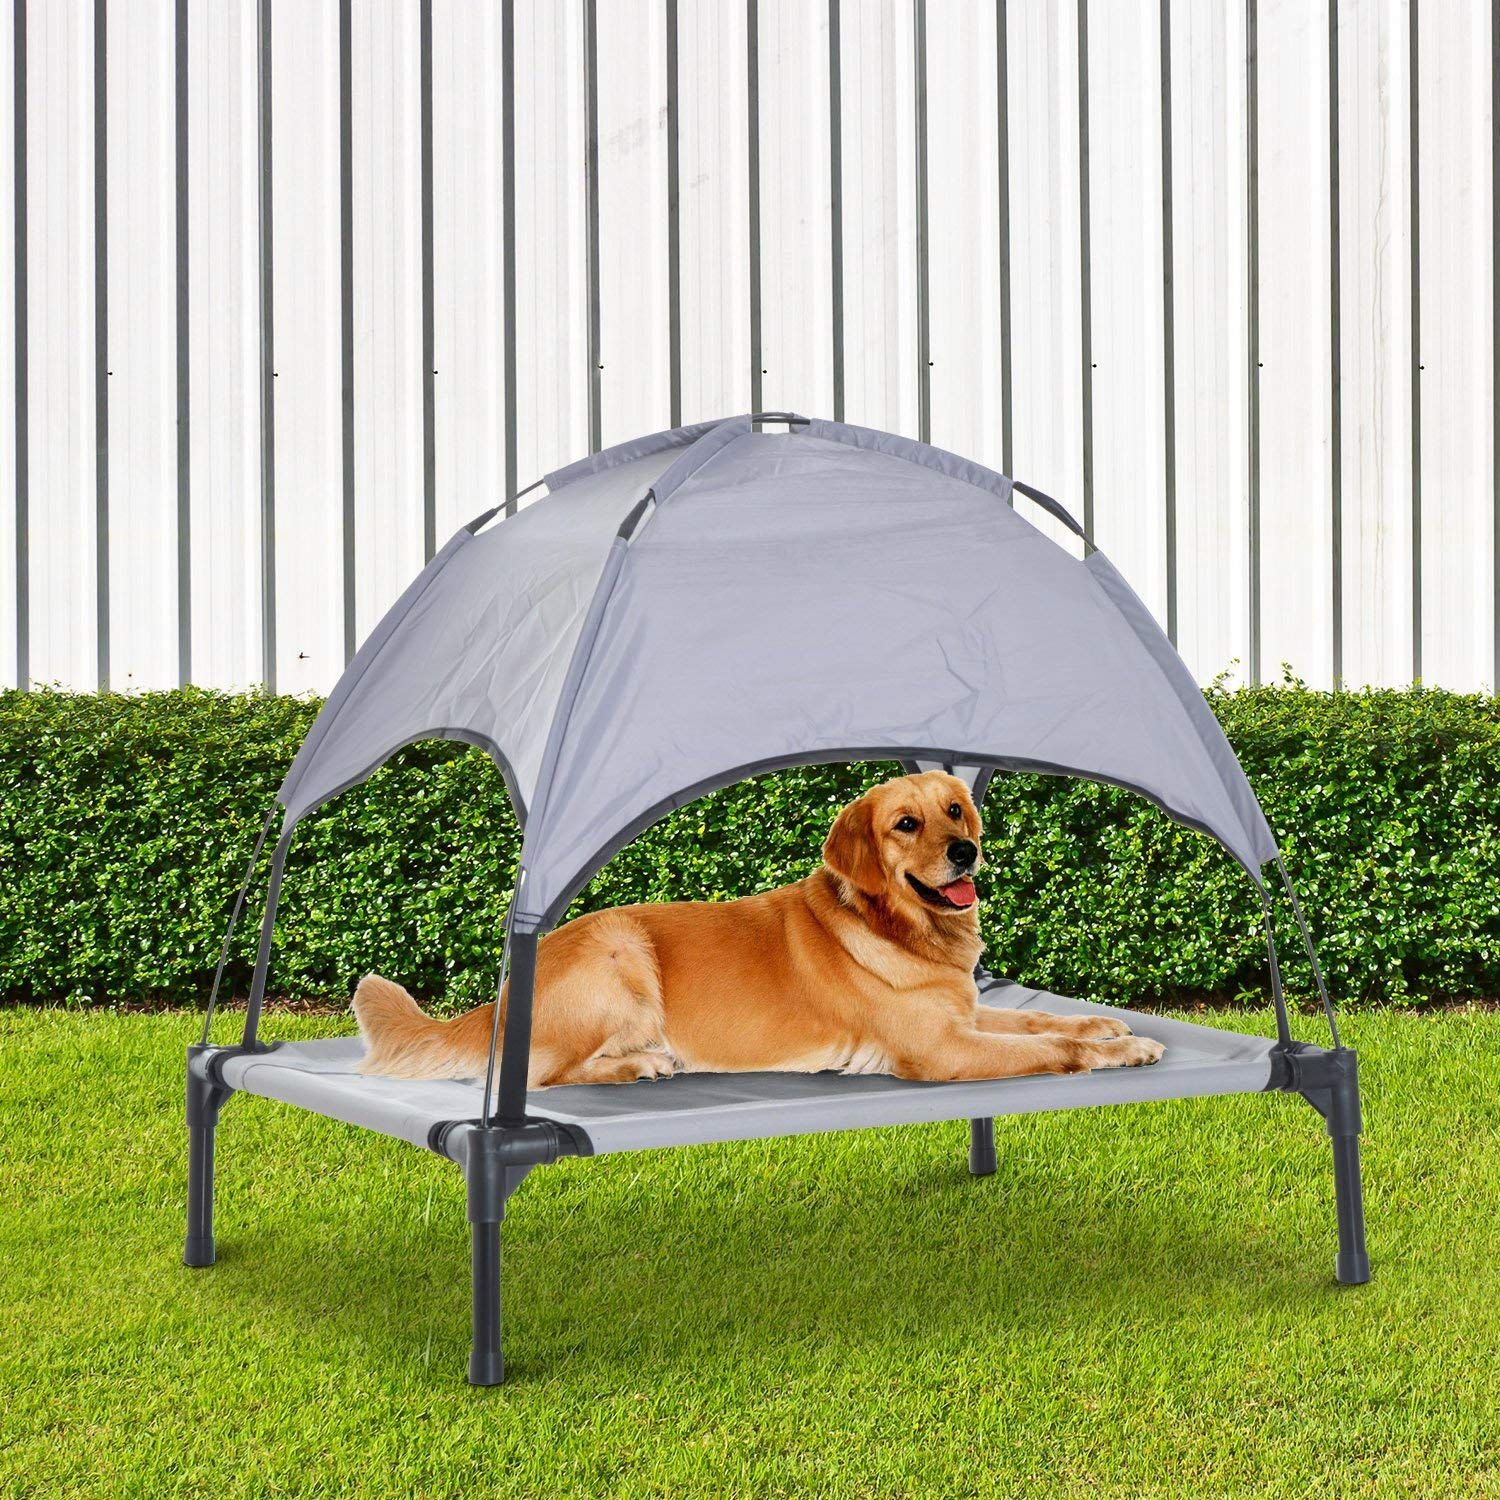 Festnight Elevated Cooling Pet Dog Bed Cot With Canopy Shade Indoor Or Outdoo 30 Great Having You For Seeing Our Picture This Is An Kedi Kopek Kopek Kedi